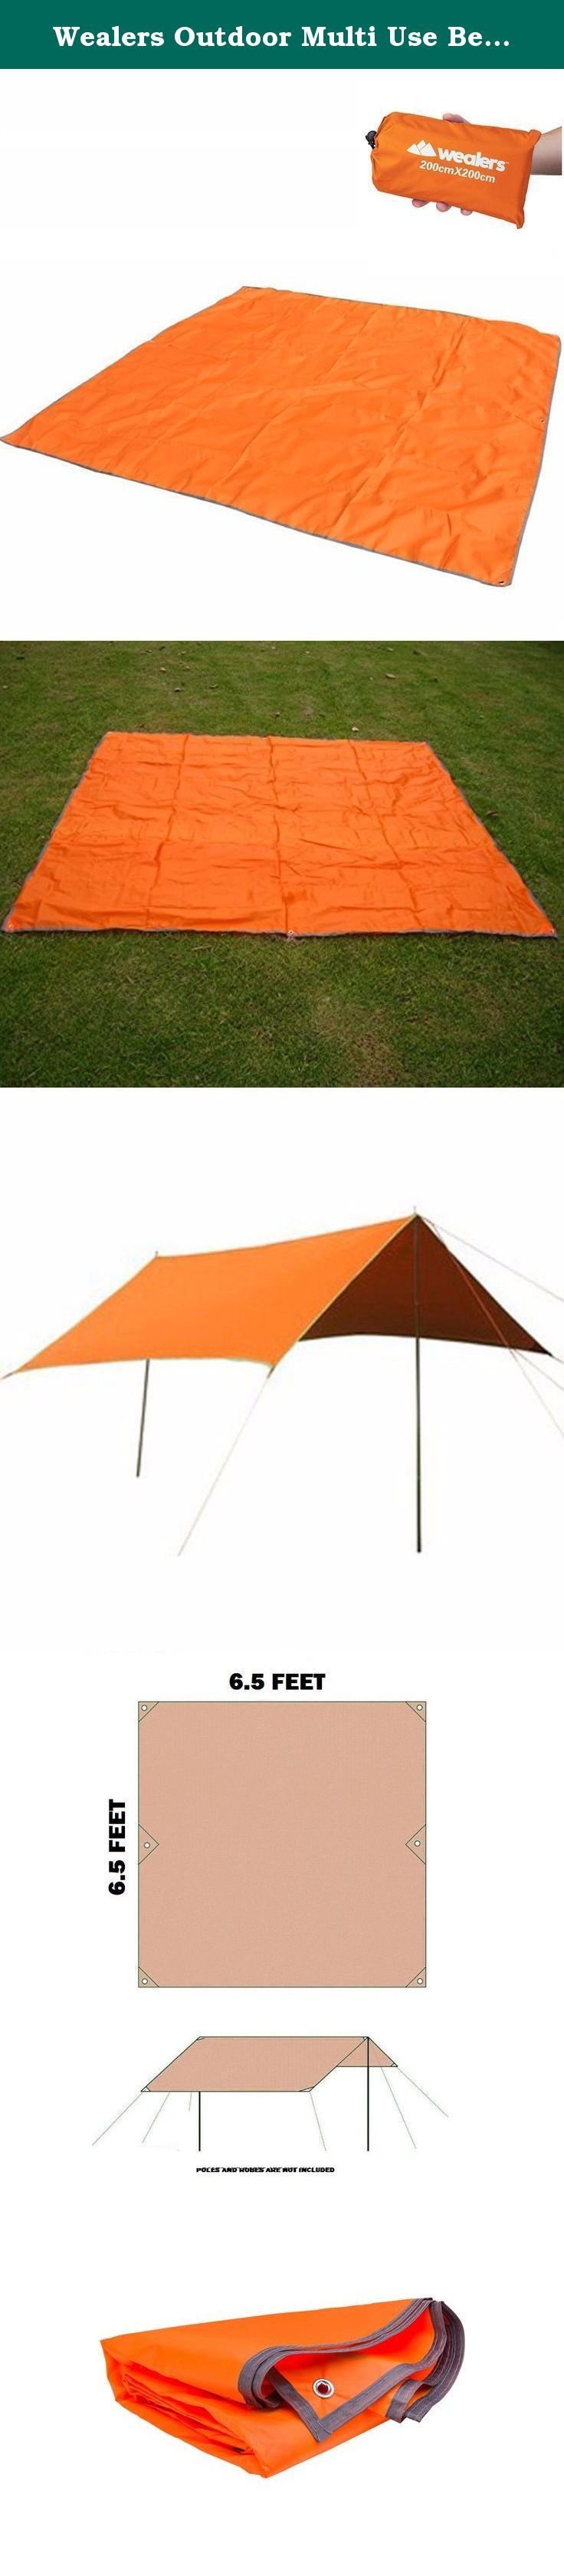 Wealers Outdoor Multi Use Beach Blanket Mat / Camping Canopy Cover / Tent Tarp / Picnic Throw with Nylon Pouch & 4 Stakes / Pegs - 6.5 X 6.5 Feet (Orange). This Wealers Shelter is a lean-to for fast shelter for 2-3-4 persons. The ultralight fabric is a 300D Thickened Oxford fabric with PU coating, providing a tough, waterproof shelter for sleeping in the woods or just resting in the shade. The tarp measures 6.5 feet by 6.5 feet (3-4 Person) sufficient for 2-3-4 persons. The loops provide...